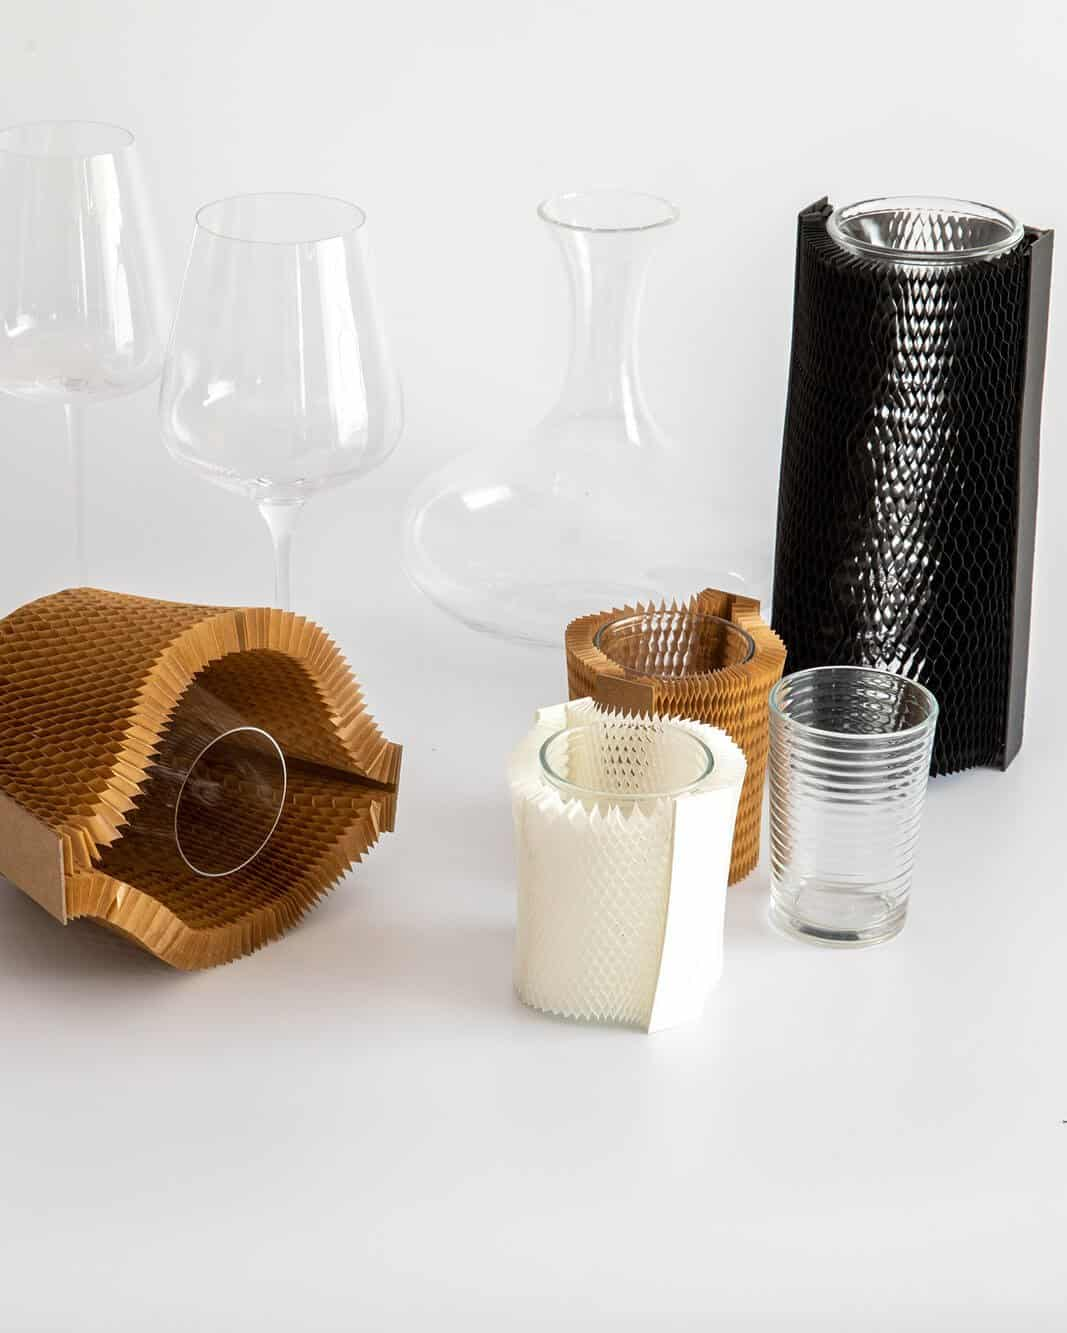 Flexi-Hex Air for glassware